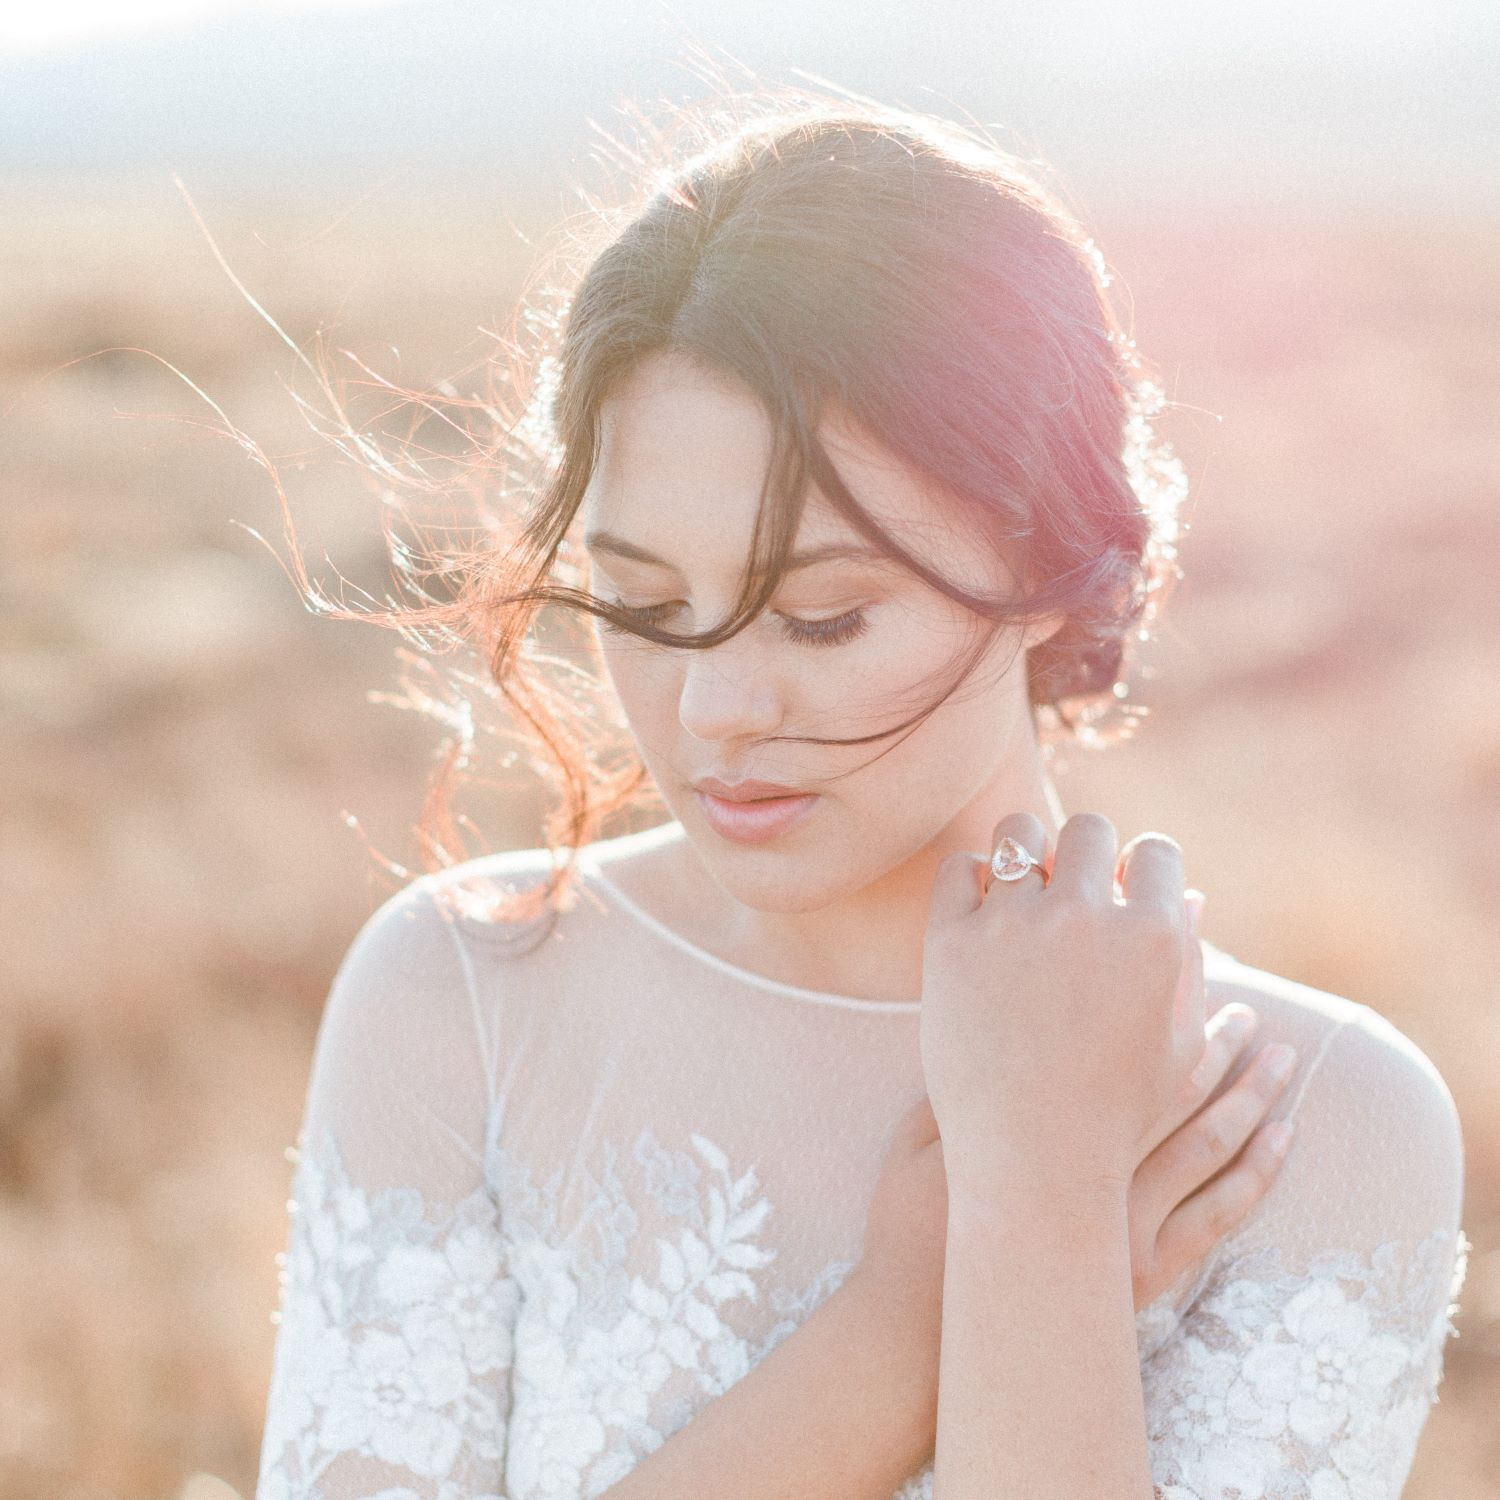 natural bronzed makeup and messy bun hair style on beautiful bride